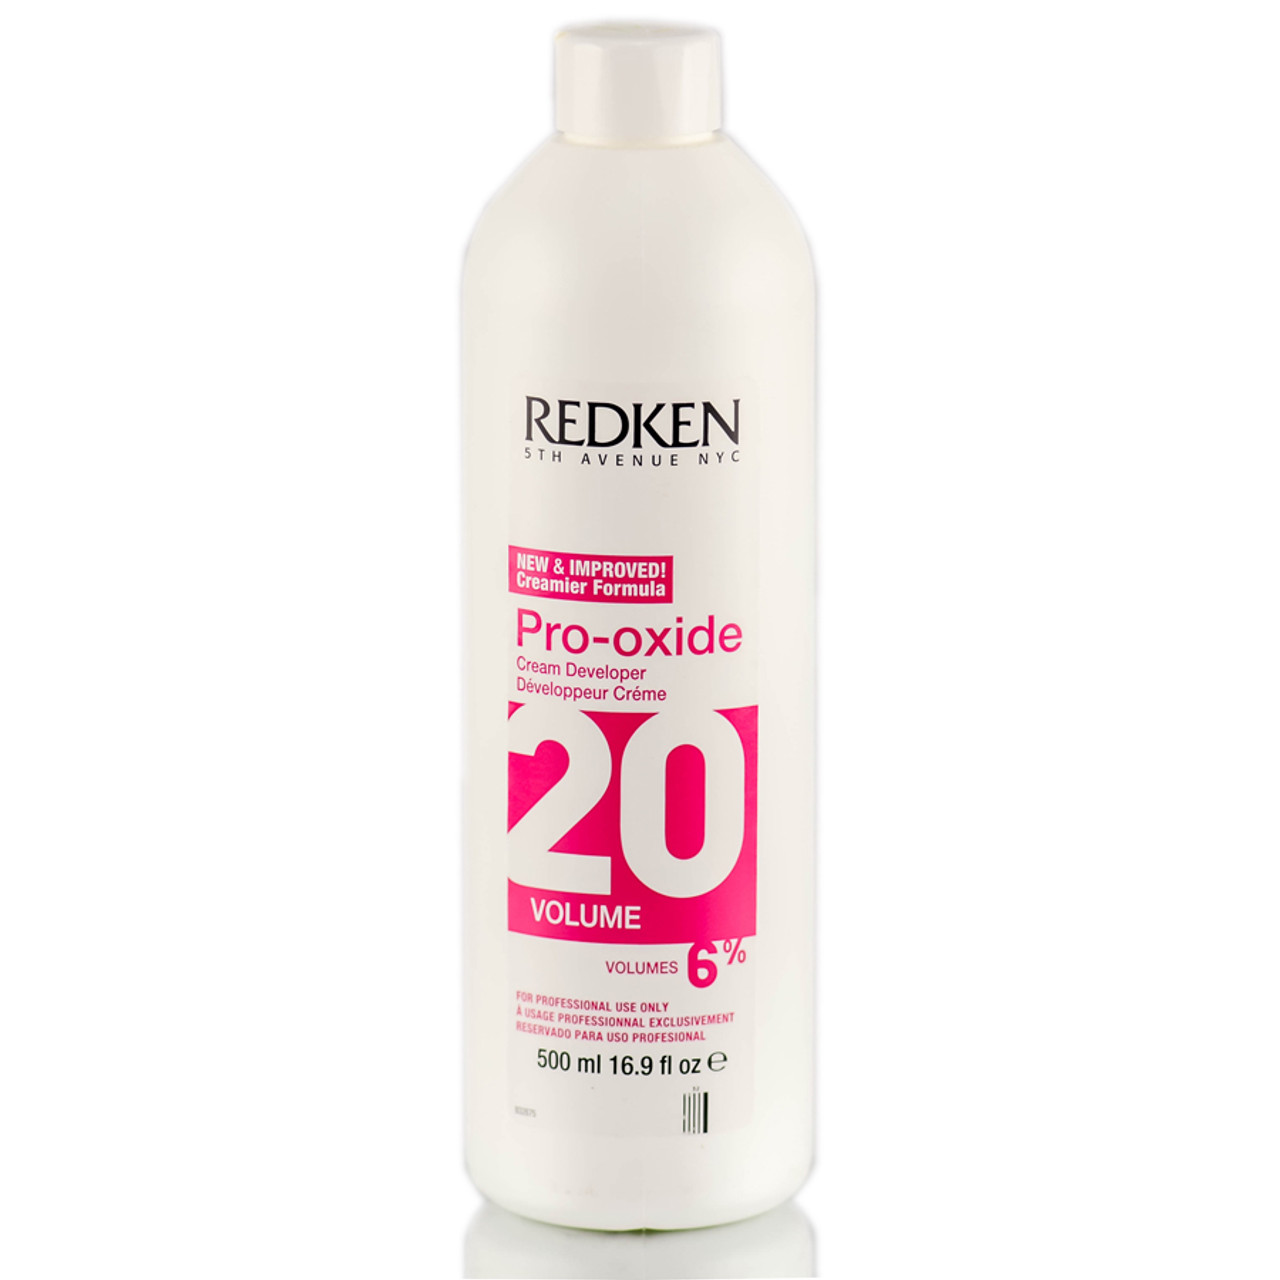 Redken Pro Oxide Cream Developer Sleekshop Formerly Sleekhair